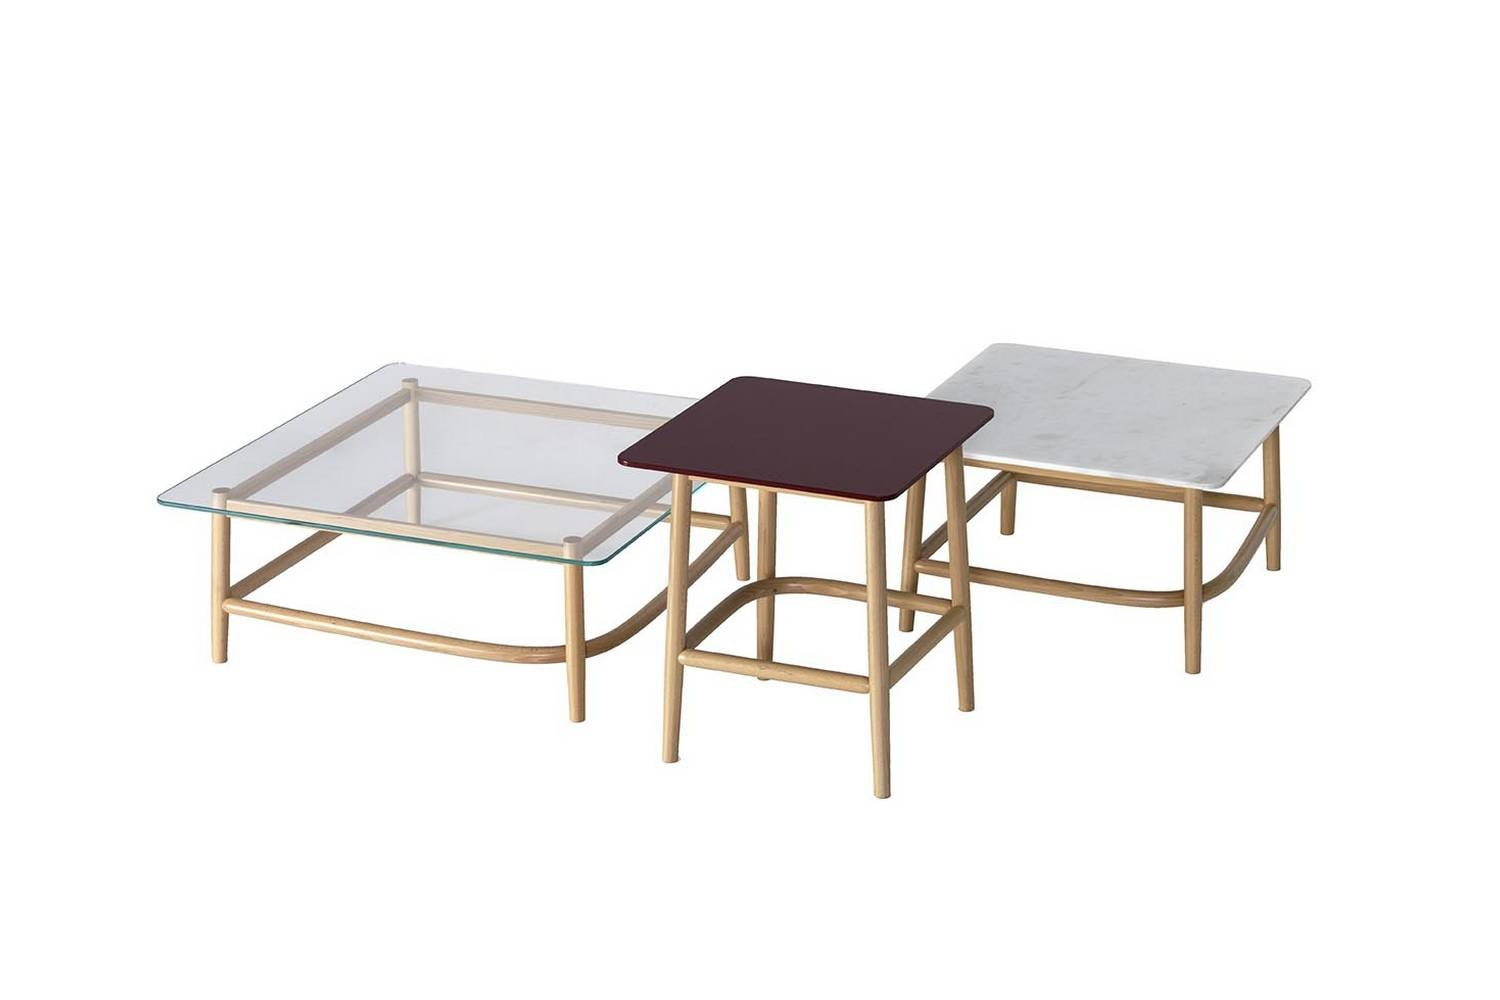 Single Curve Low Tables by Nendo for Wiener GTV Design